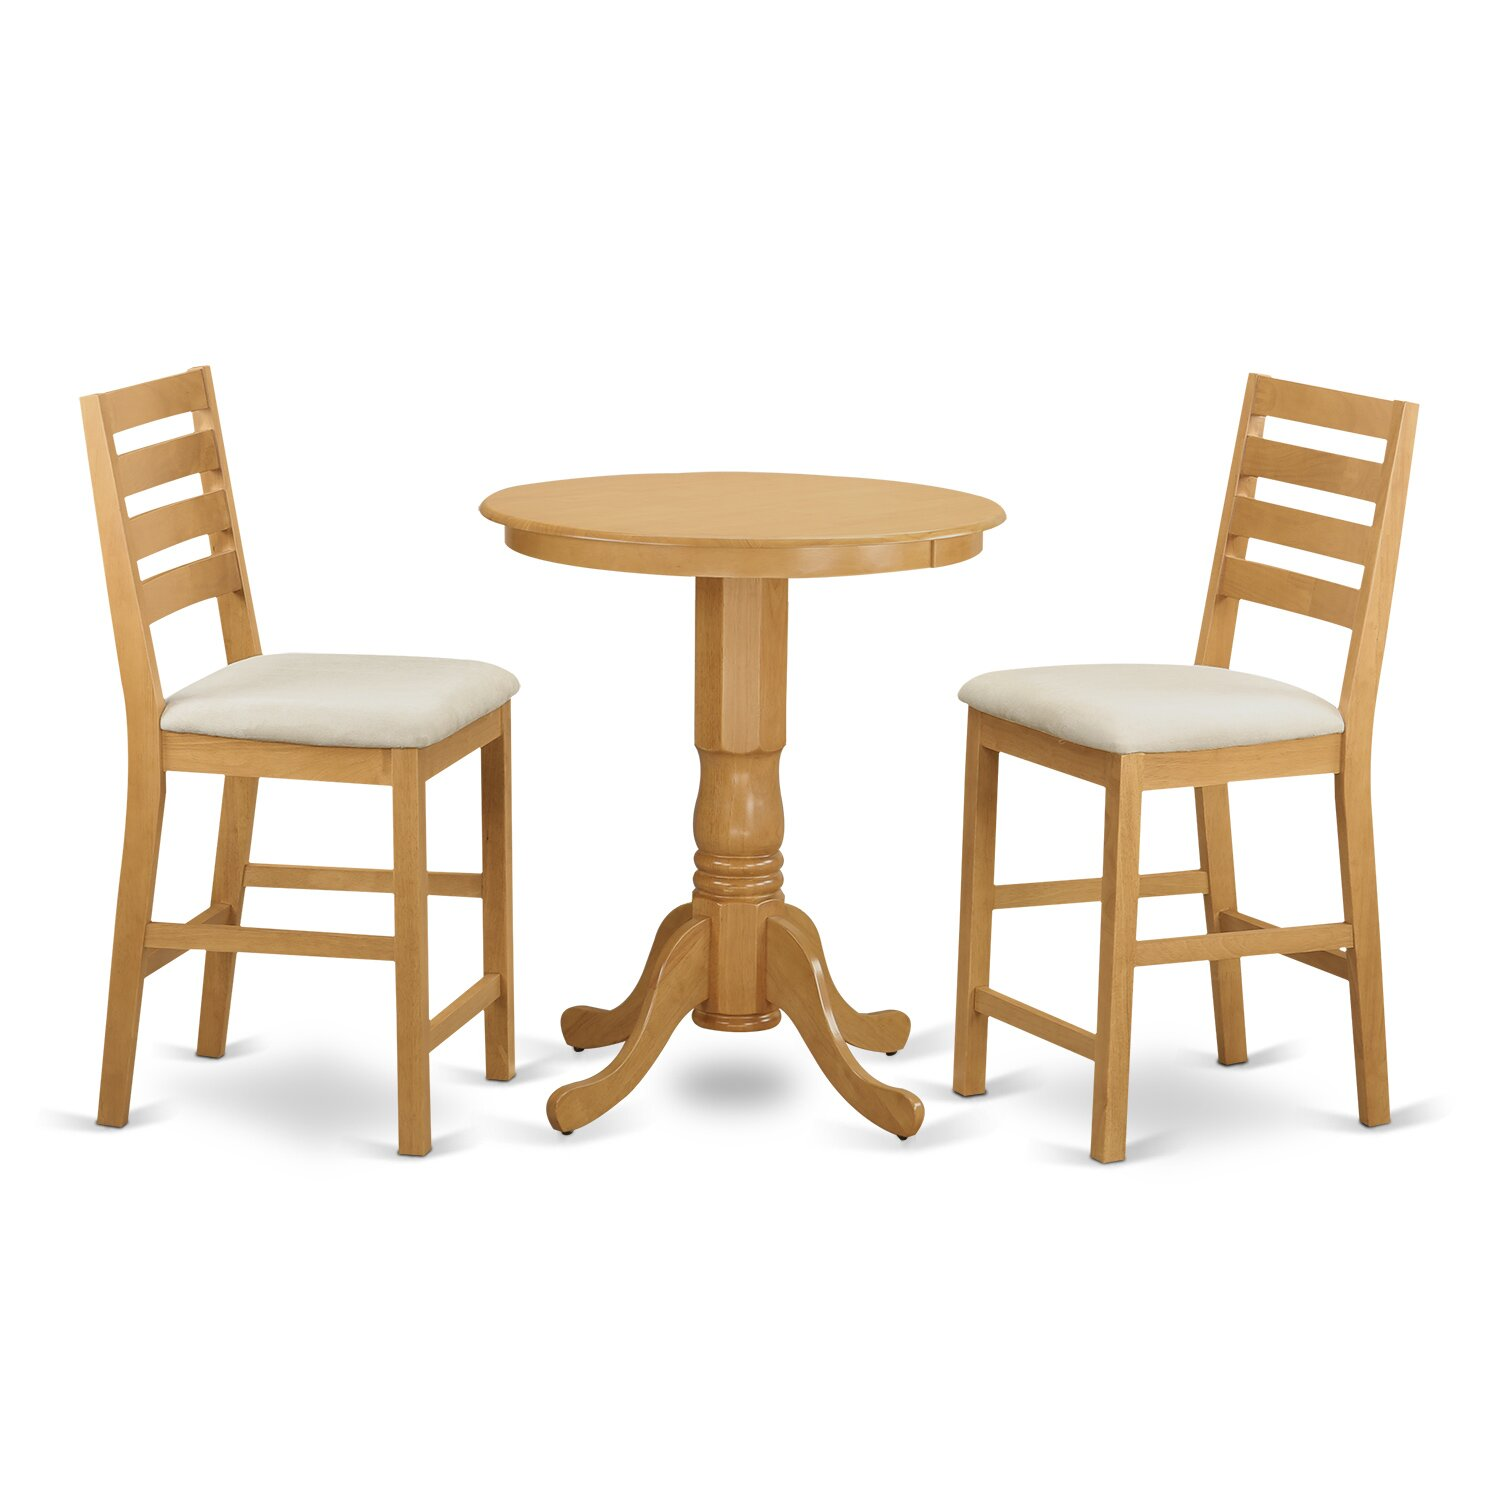 Wooden importers 3 piece counter height pub table set for Counter height kitchen table